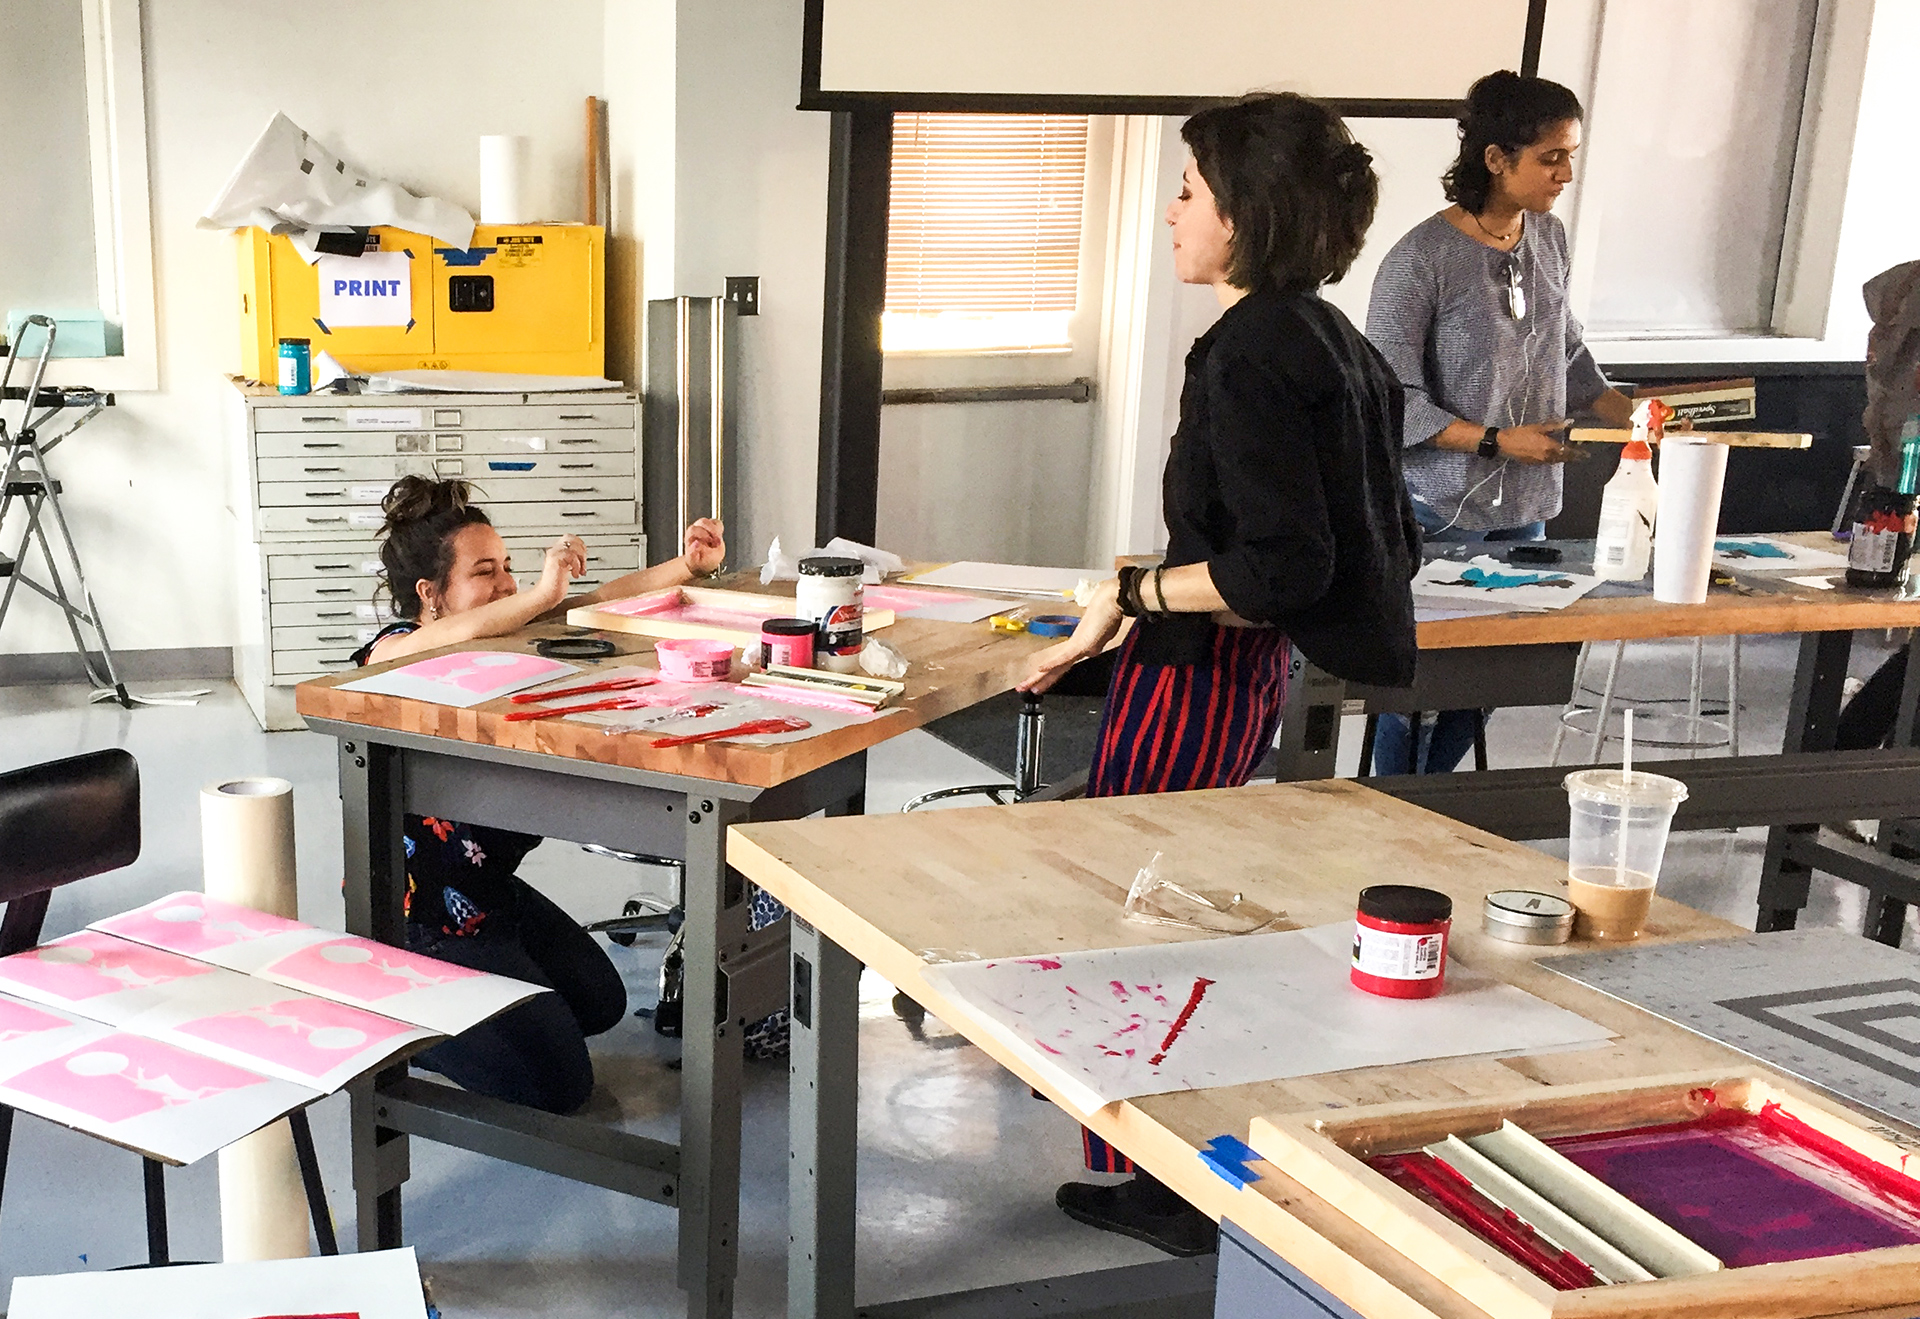 Students working collaboratively in a printmaking class